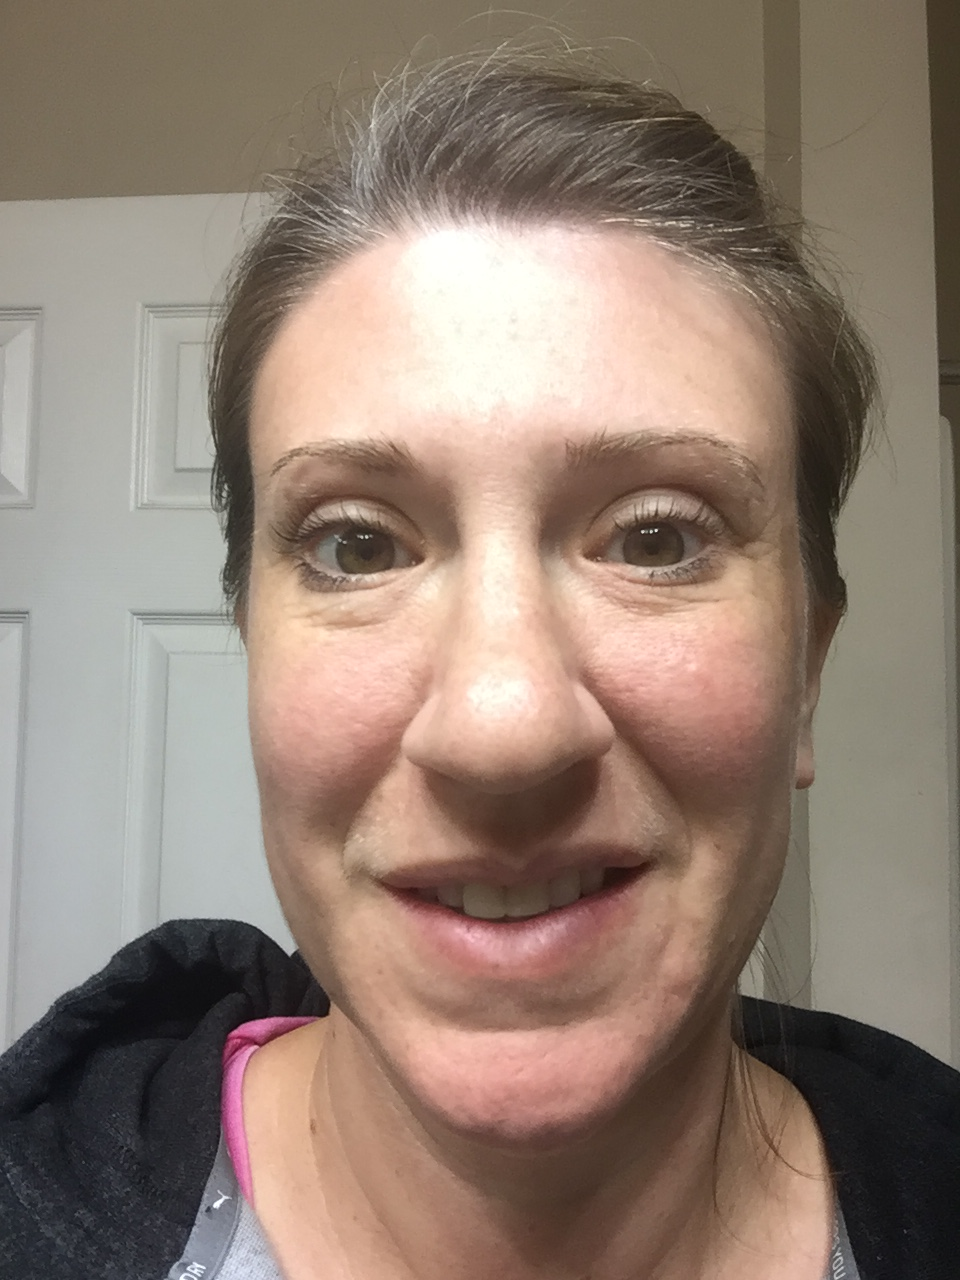 This is me less than 30 days into my journey with Kristy. I am make-up free with the exception of a small amount of mascara. I am happy - no hives, my skin hydrated and smoother .